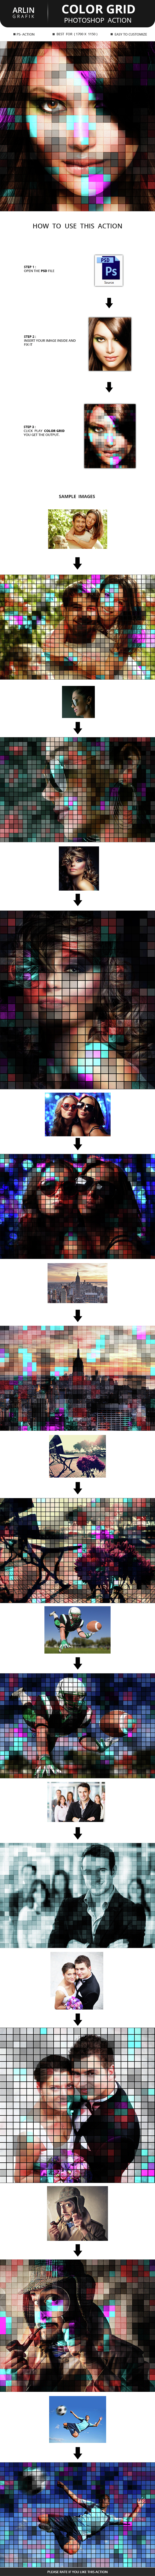 Color Grid Action - Photo Effects Actions